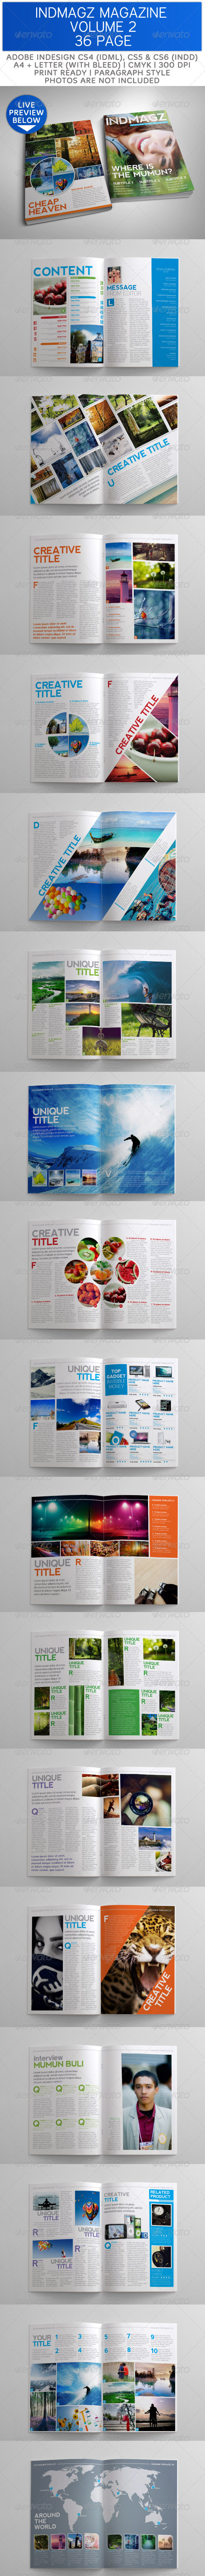 GraphicRiver 36 Pages Modern & Clean Magazine Templates Vol 2 3584825